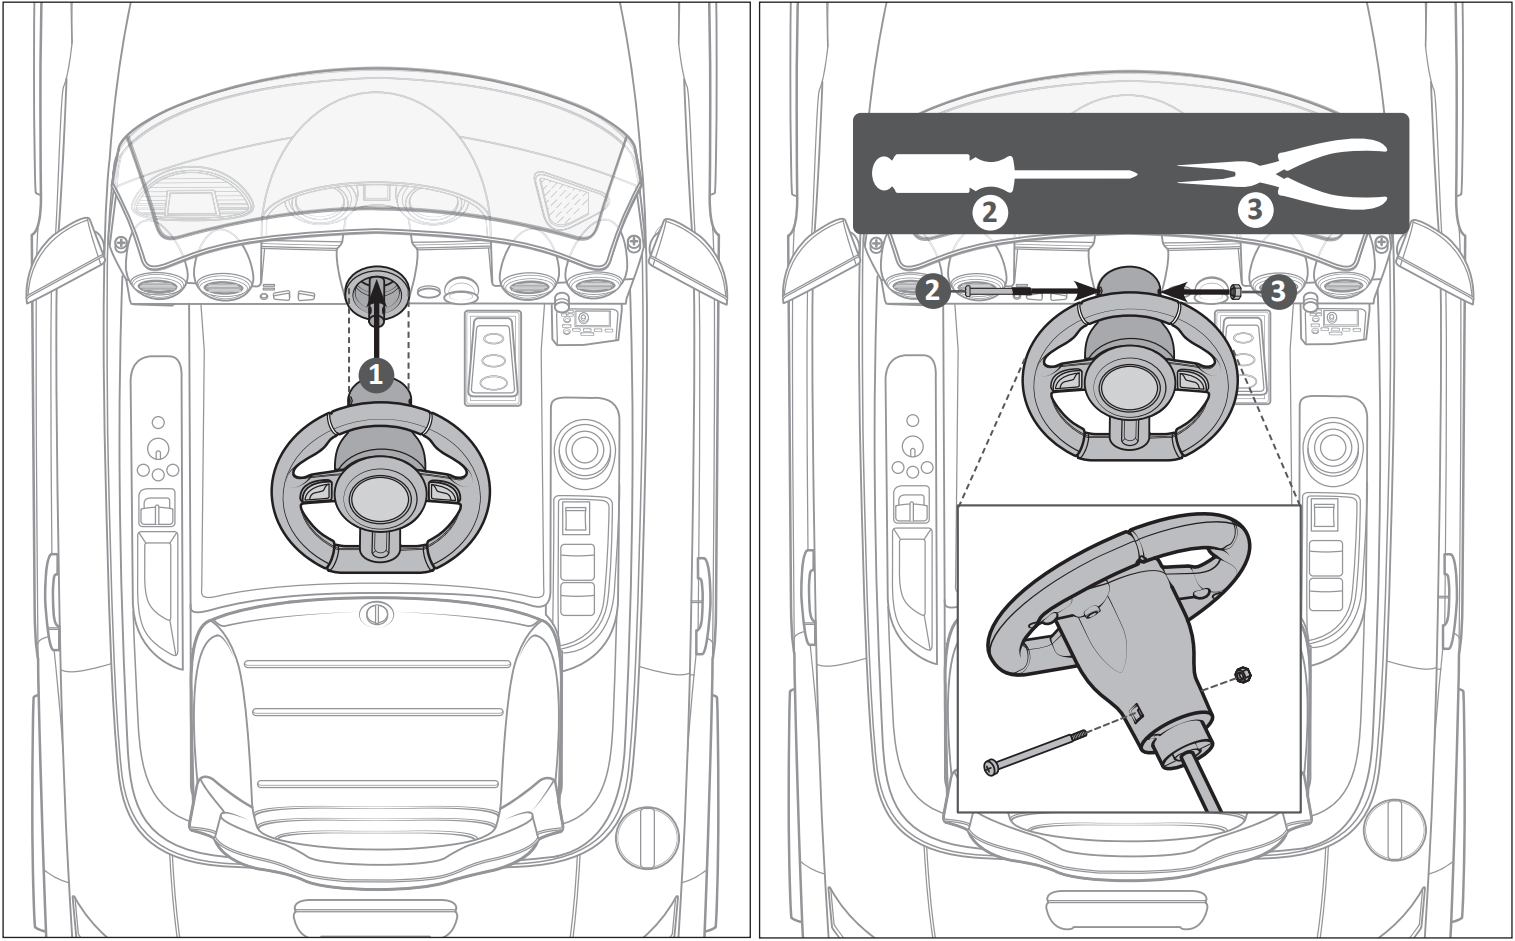 audi tt ride on car steering wheel assembly illustration